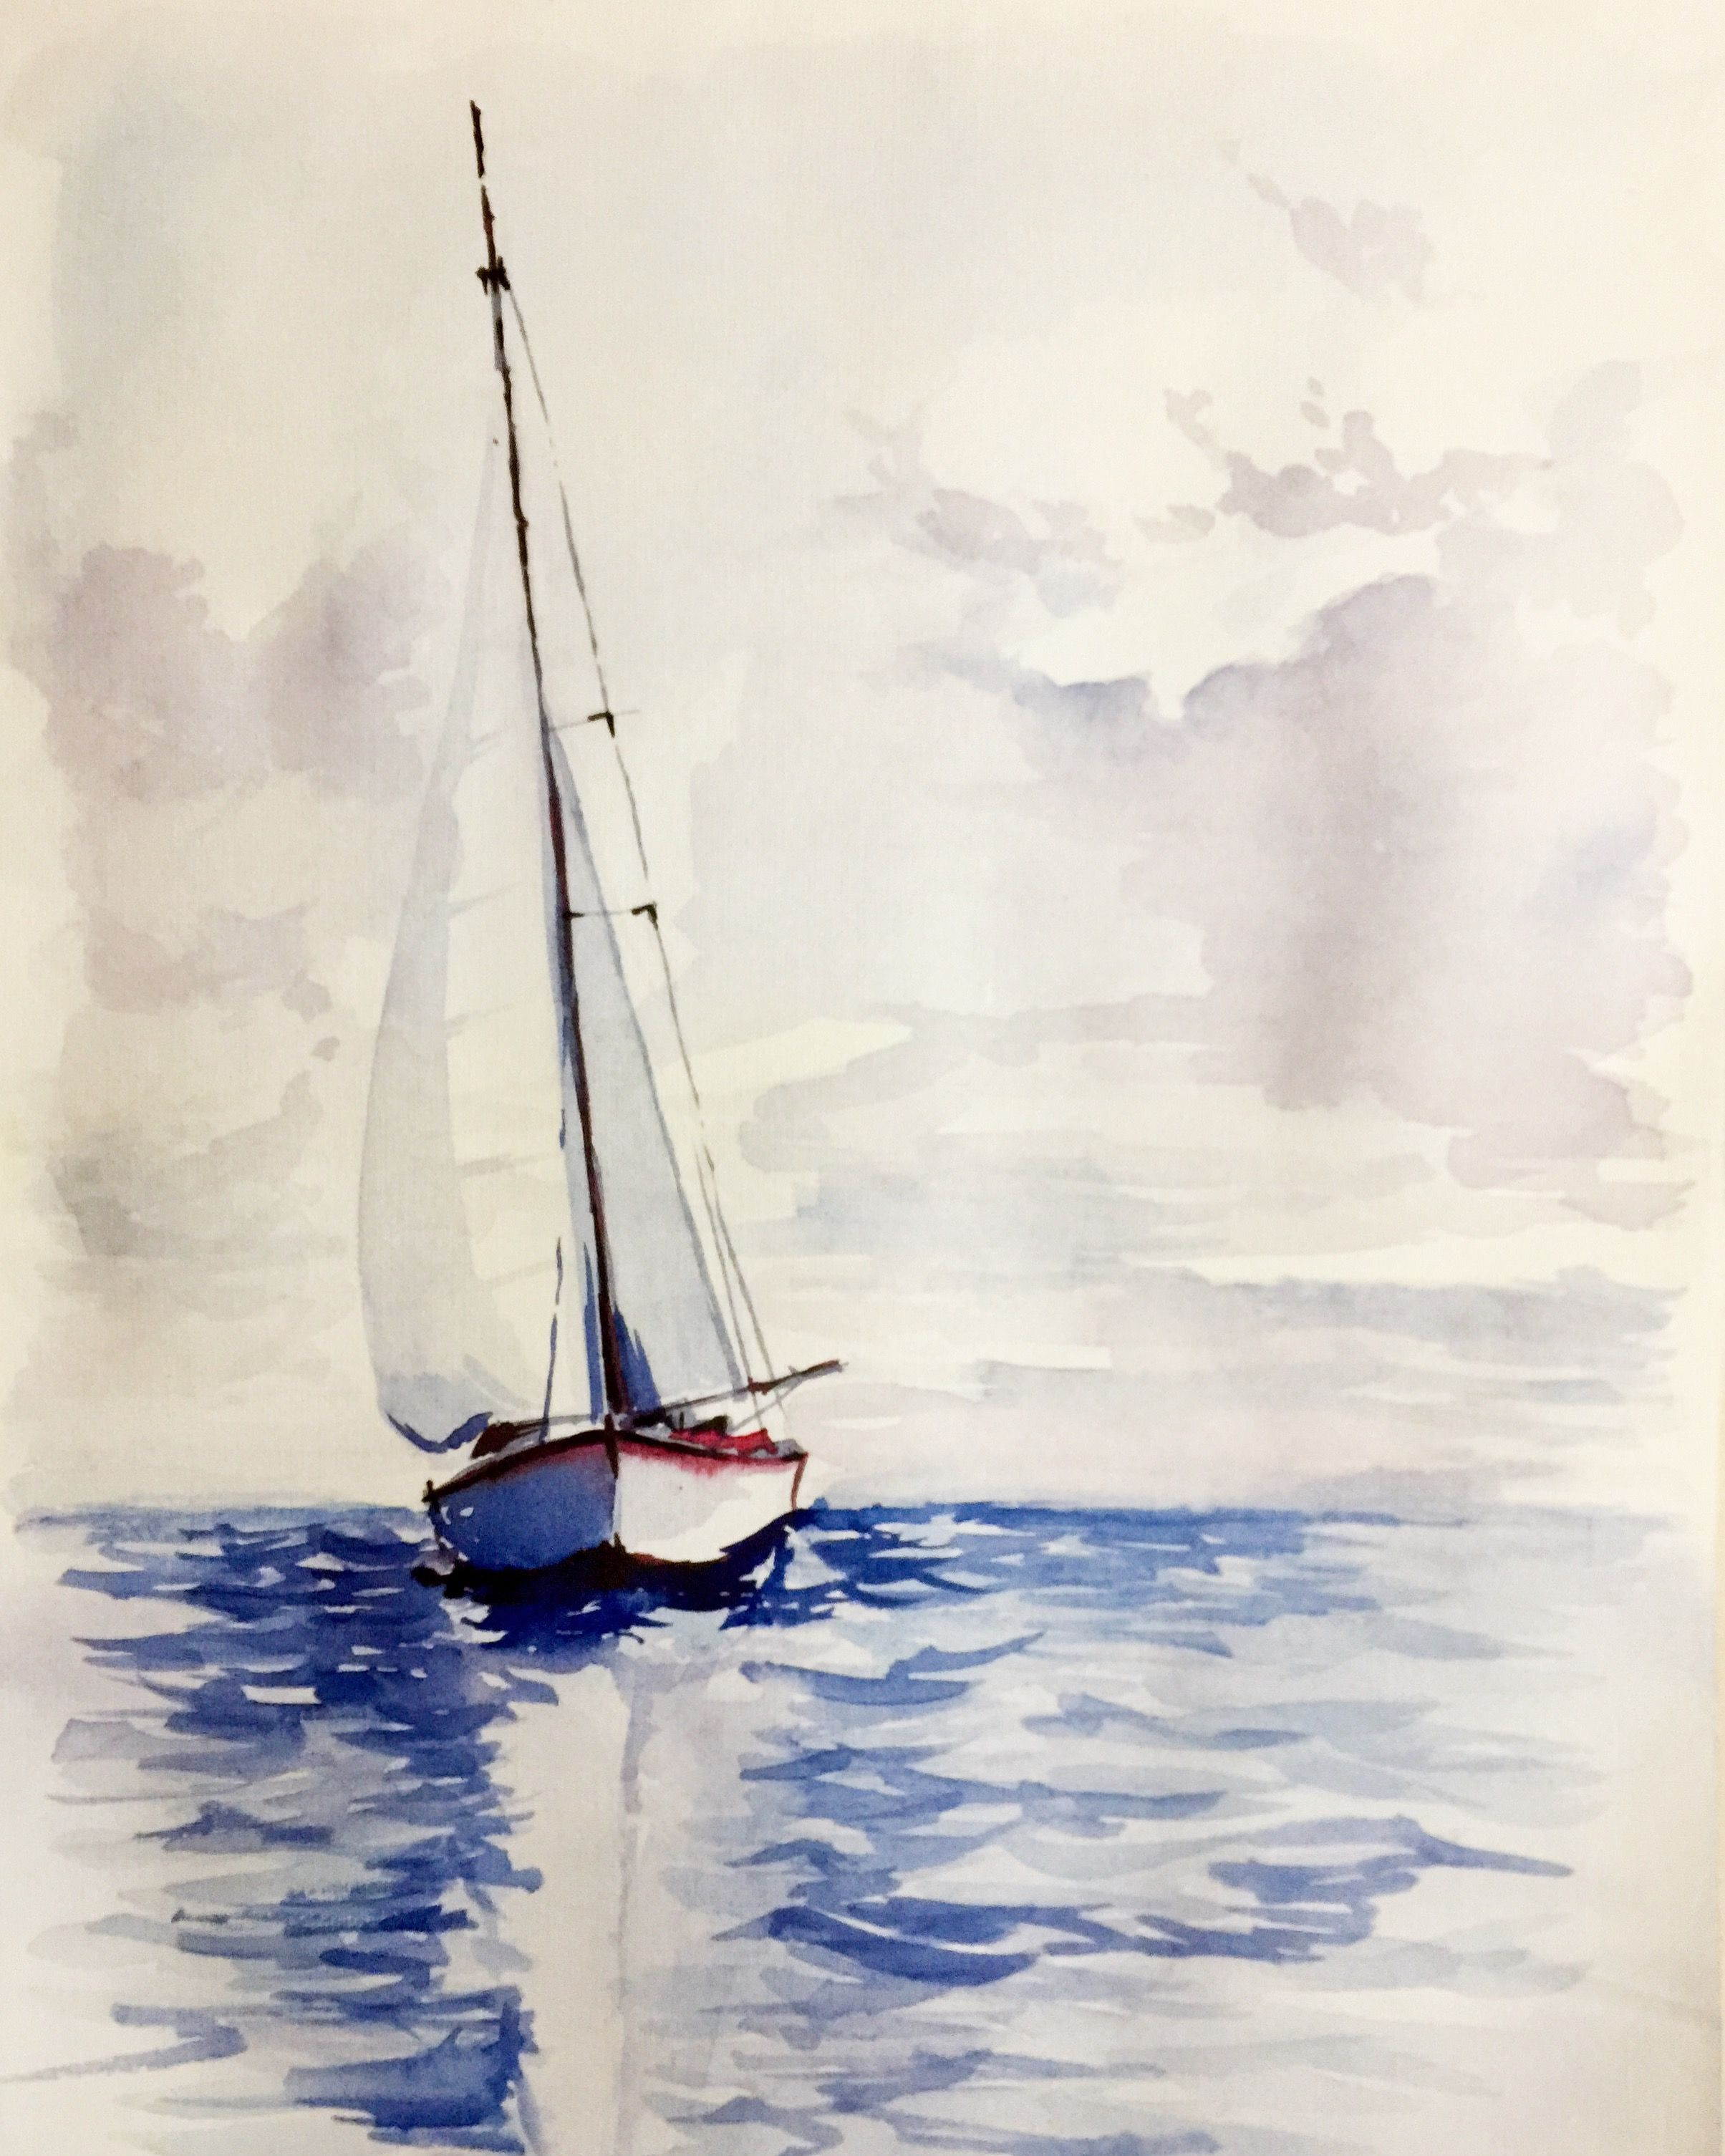 Epingle Par Monique Laramee Sur Aquarelle Sujets Inspirants En